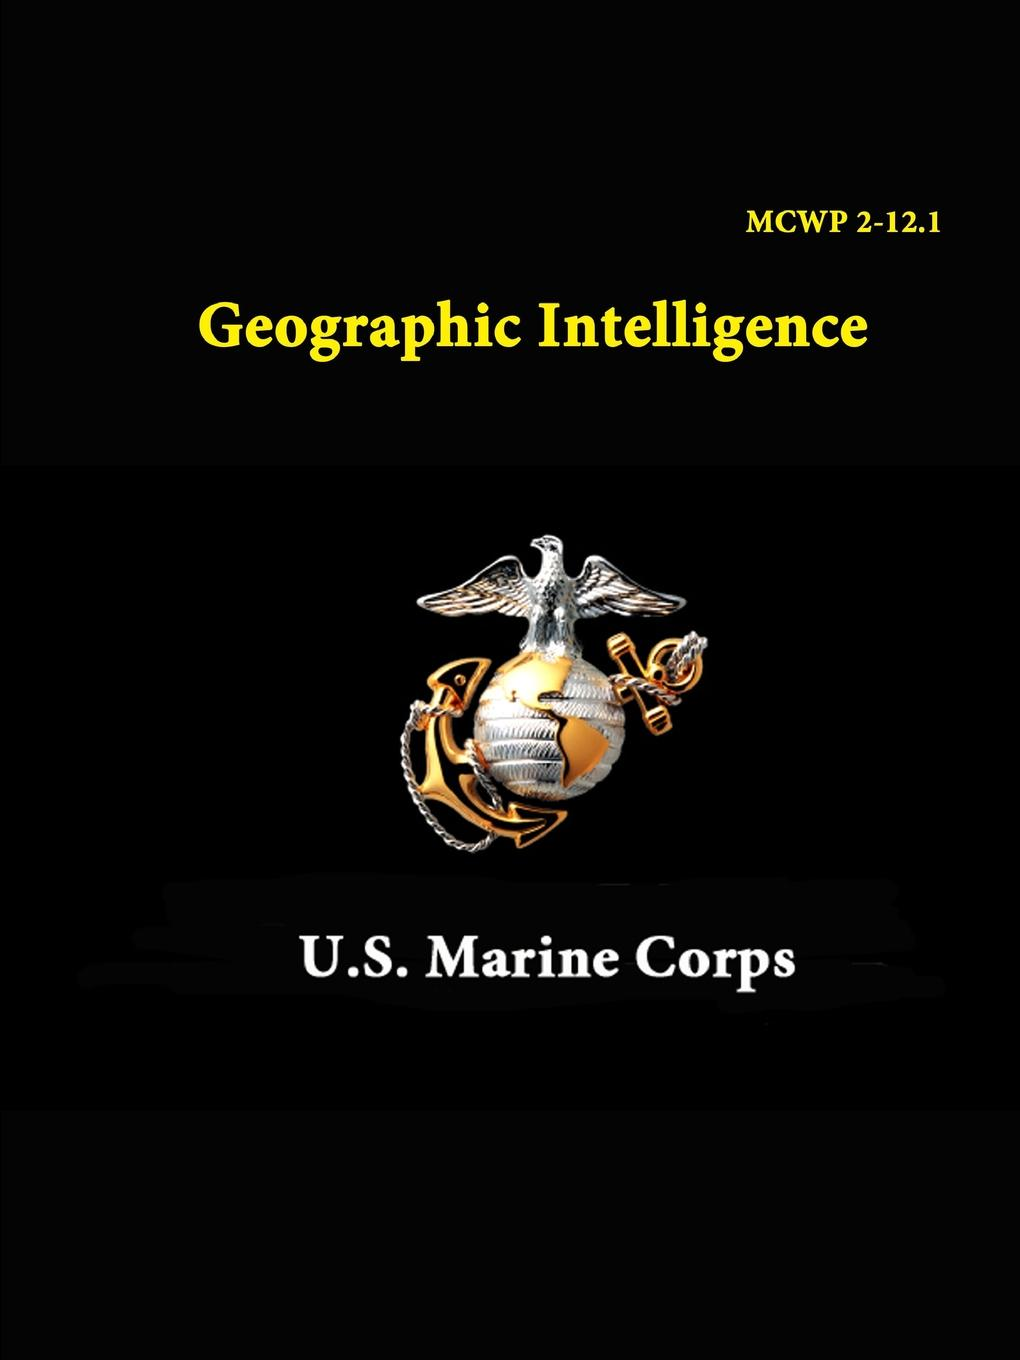 U.S. Marine Corps MCWP 2-12.1 - Geographic Intelligence john voeller g communications and information infrastructure security